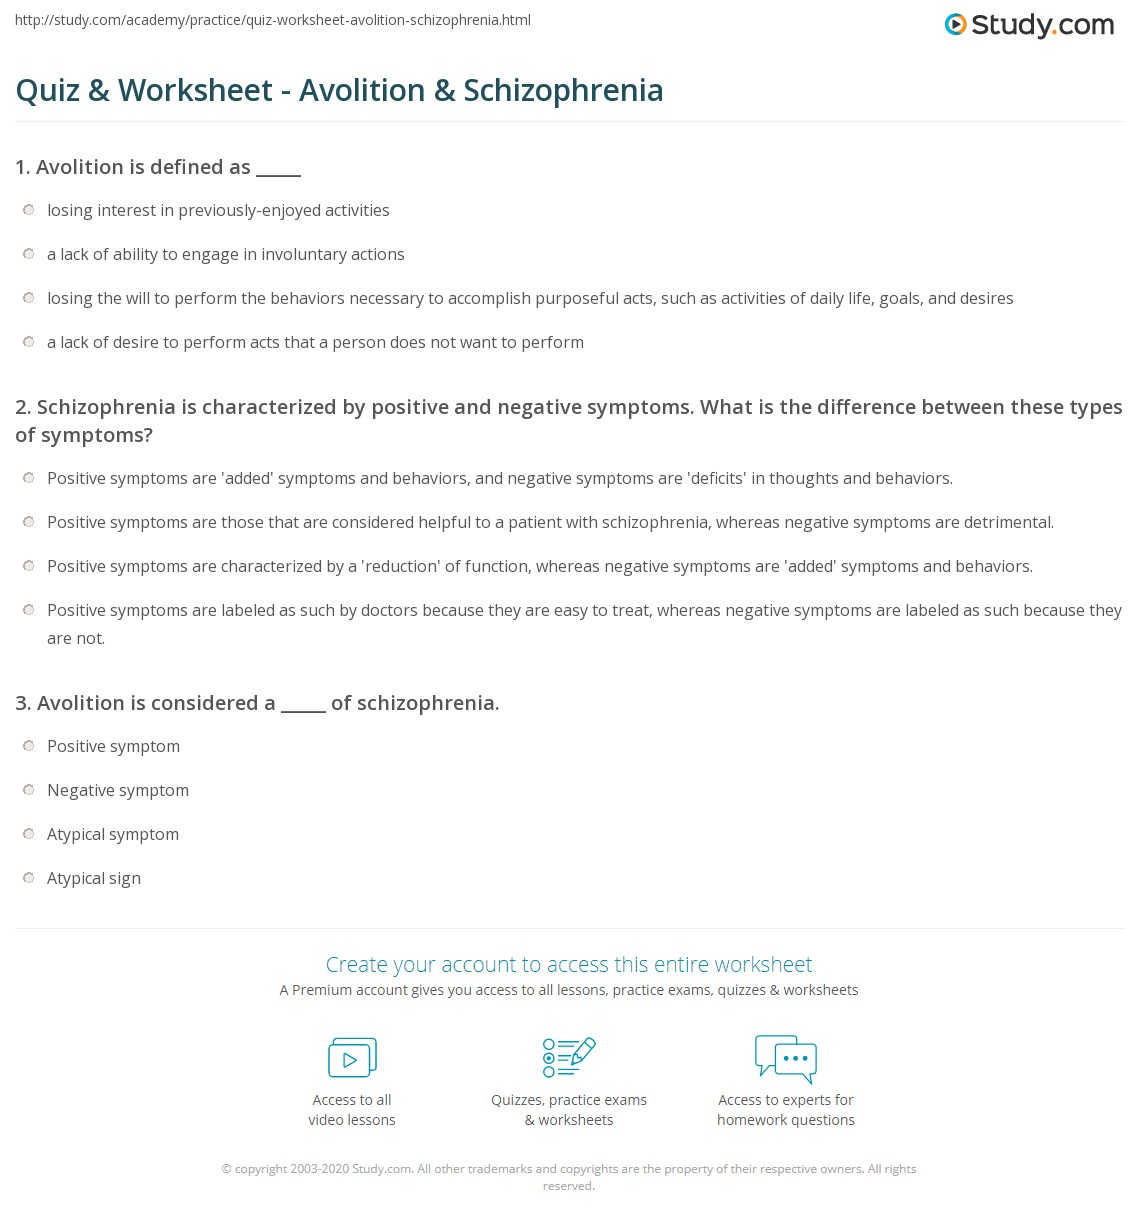 Quiz & Worksheet - Avolition & Schizophrenia | Study.com